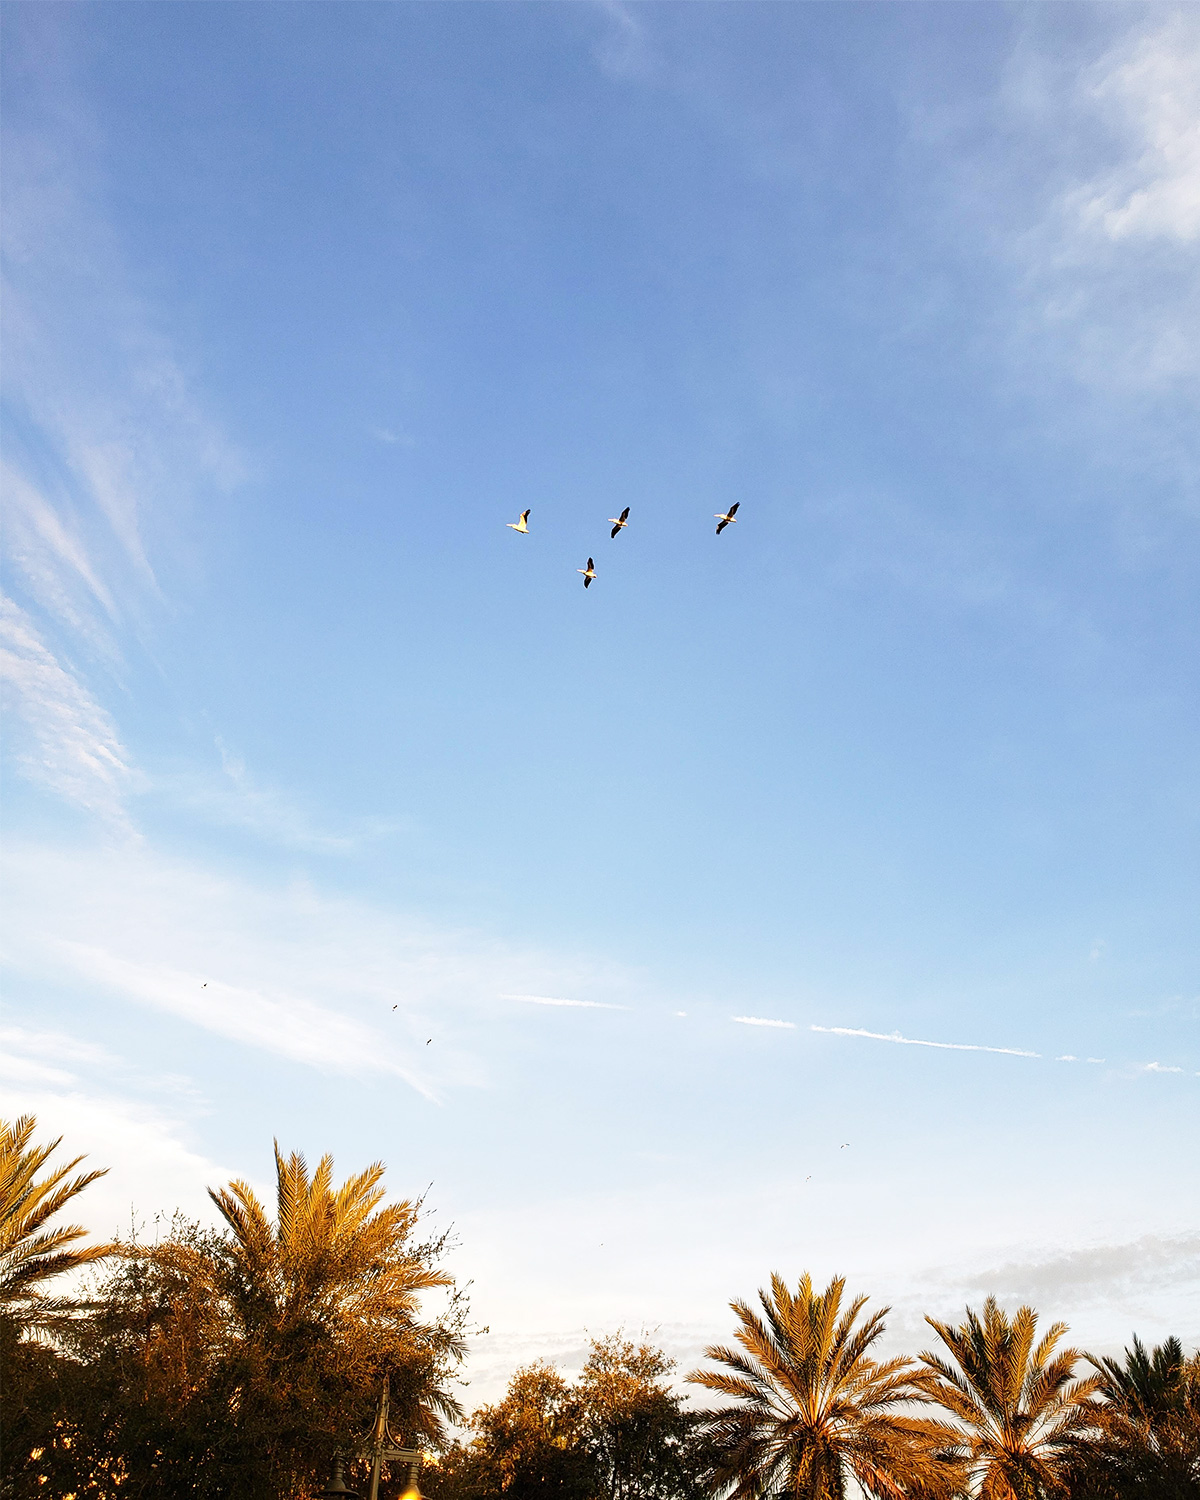 Birds flying in a blue sky